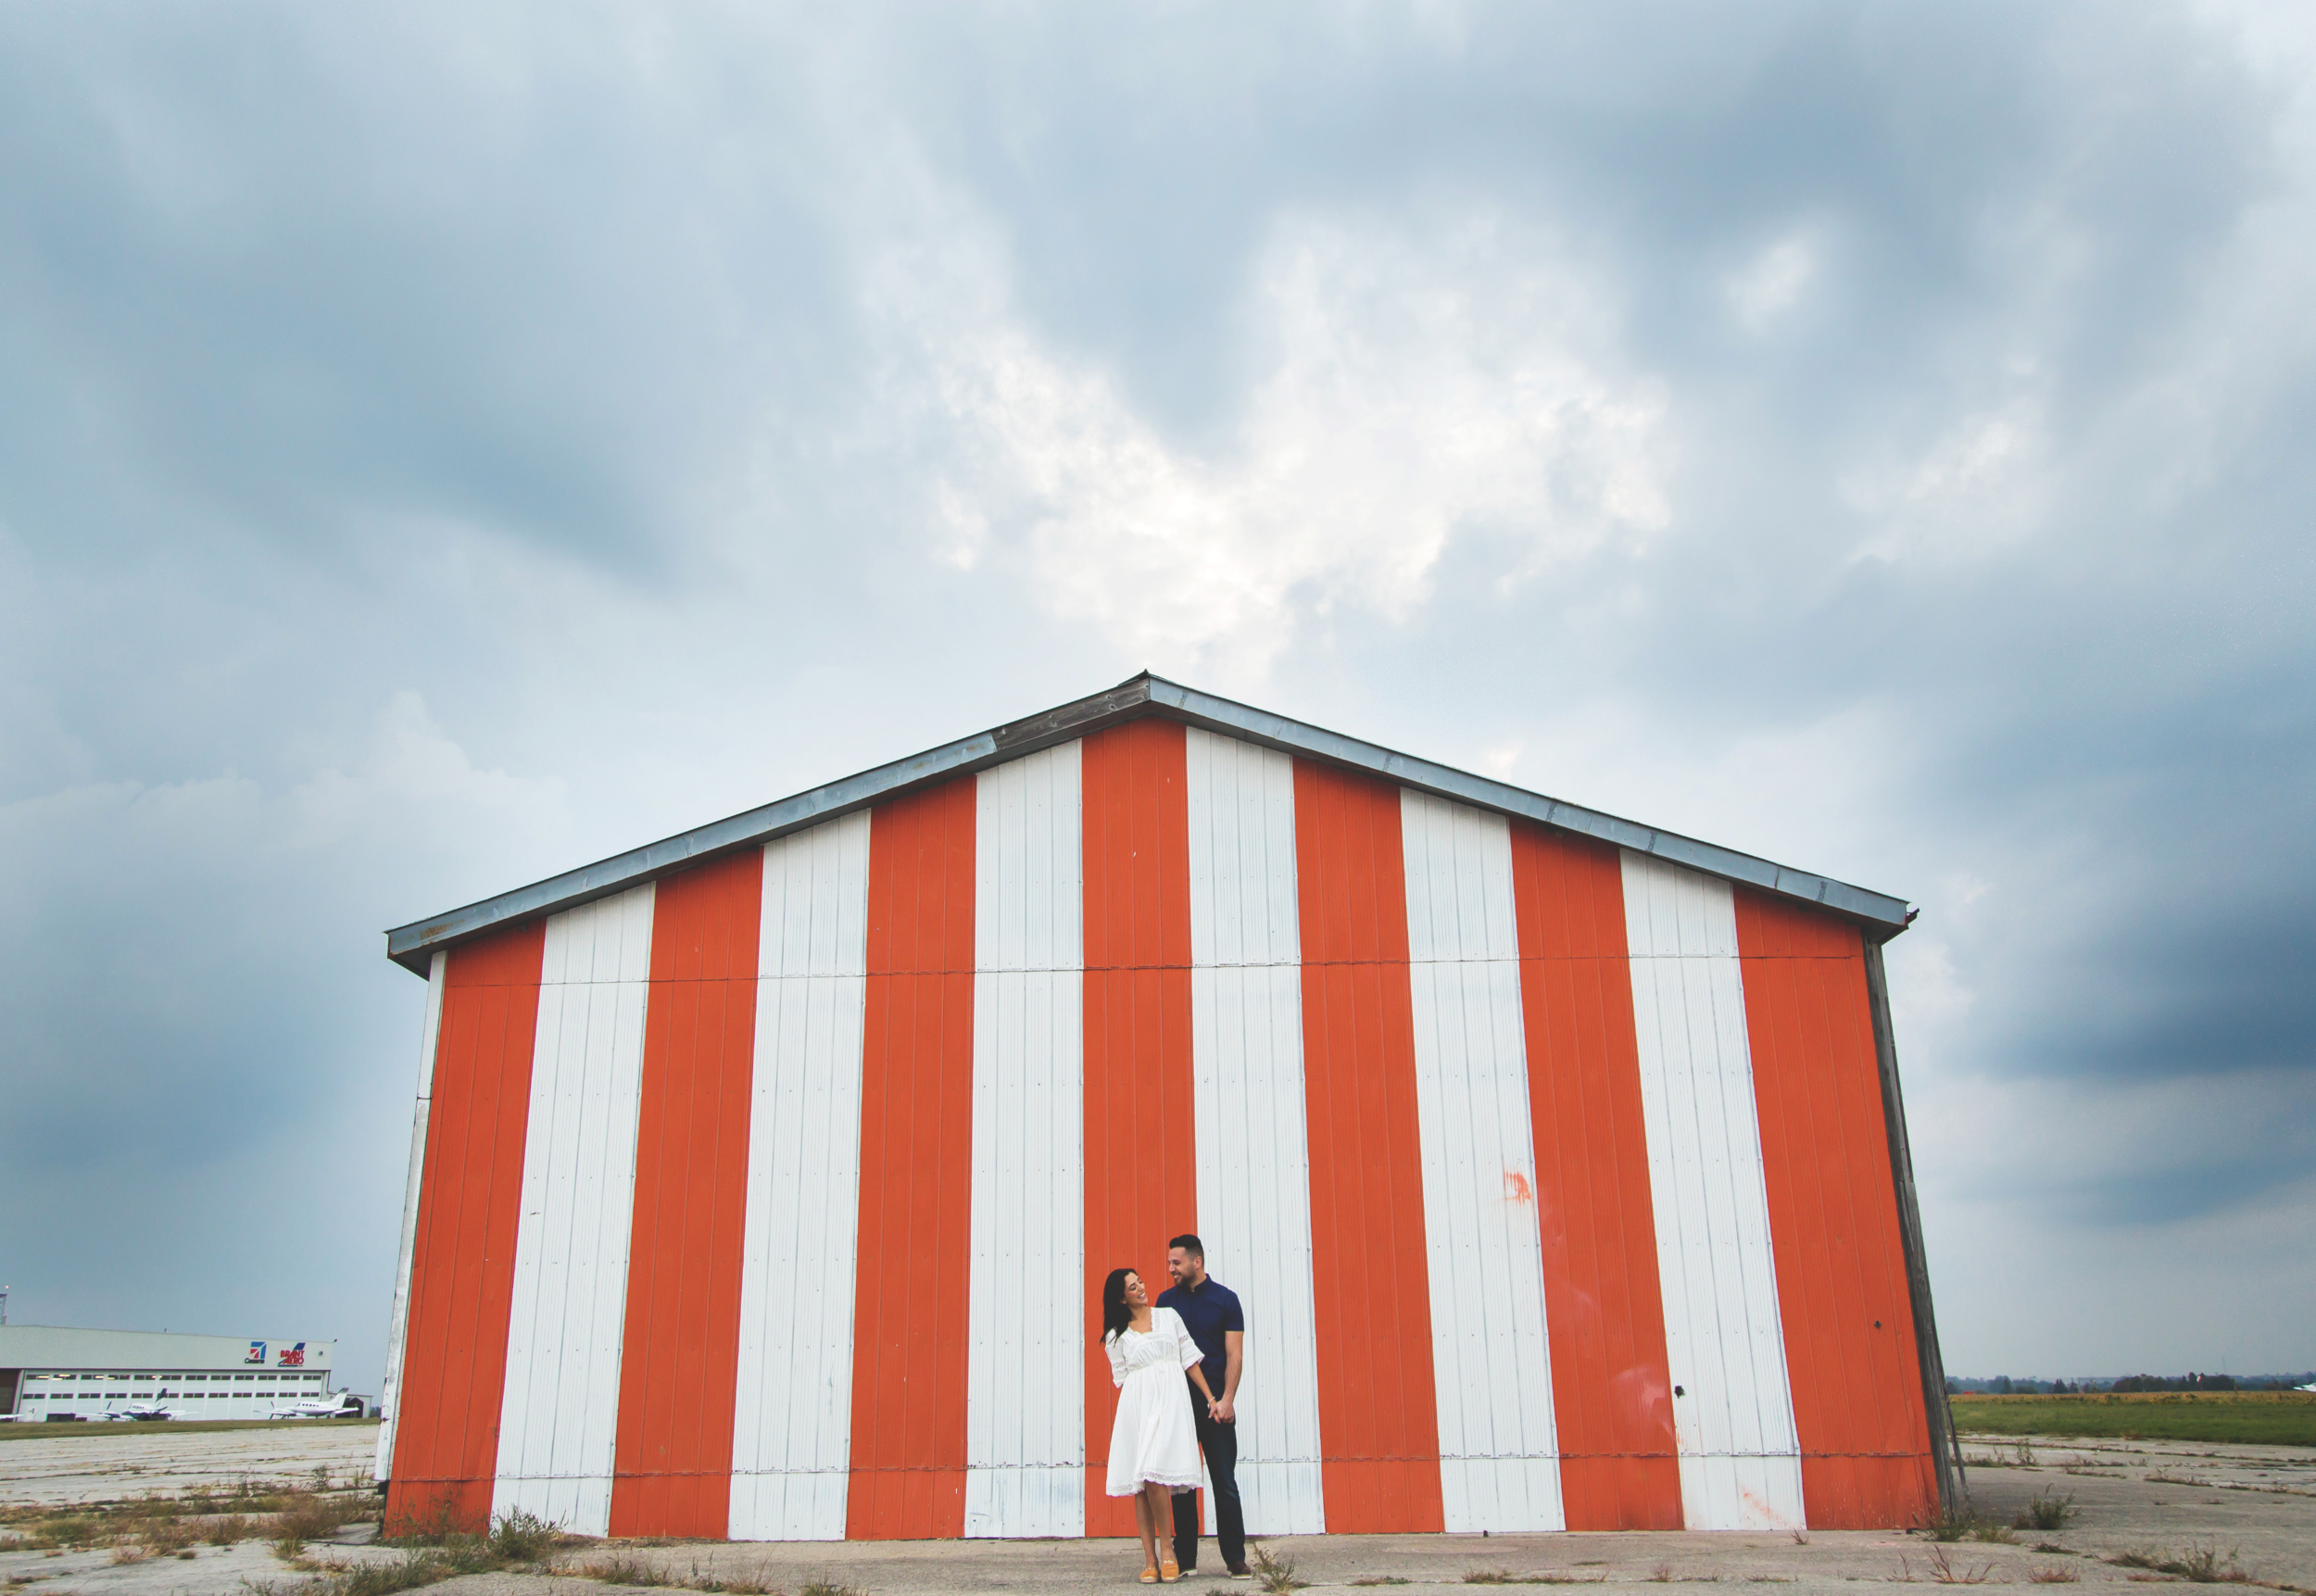 Engagement-Session-Hamilton-Burlington-Oakville-Toronto-Niagara-Wedding-Photographer-Engaged-Photography-Brantford-Airport-HamOnt-Engaged-Moments-by-Lauren-Photo-Image-23.png